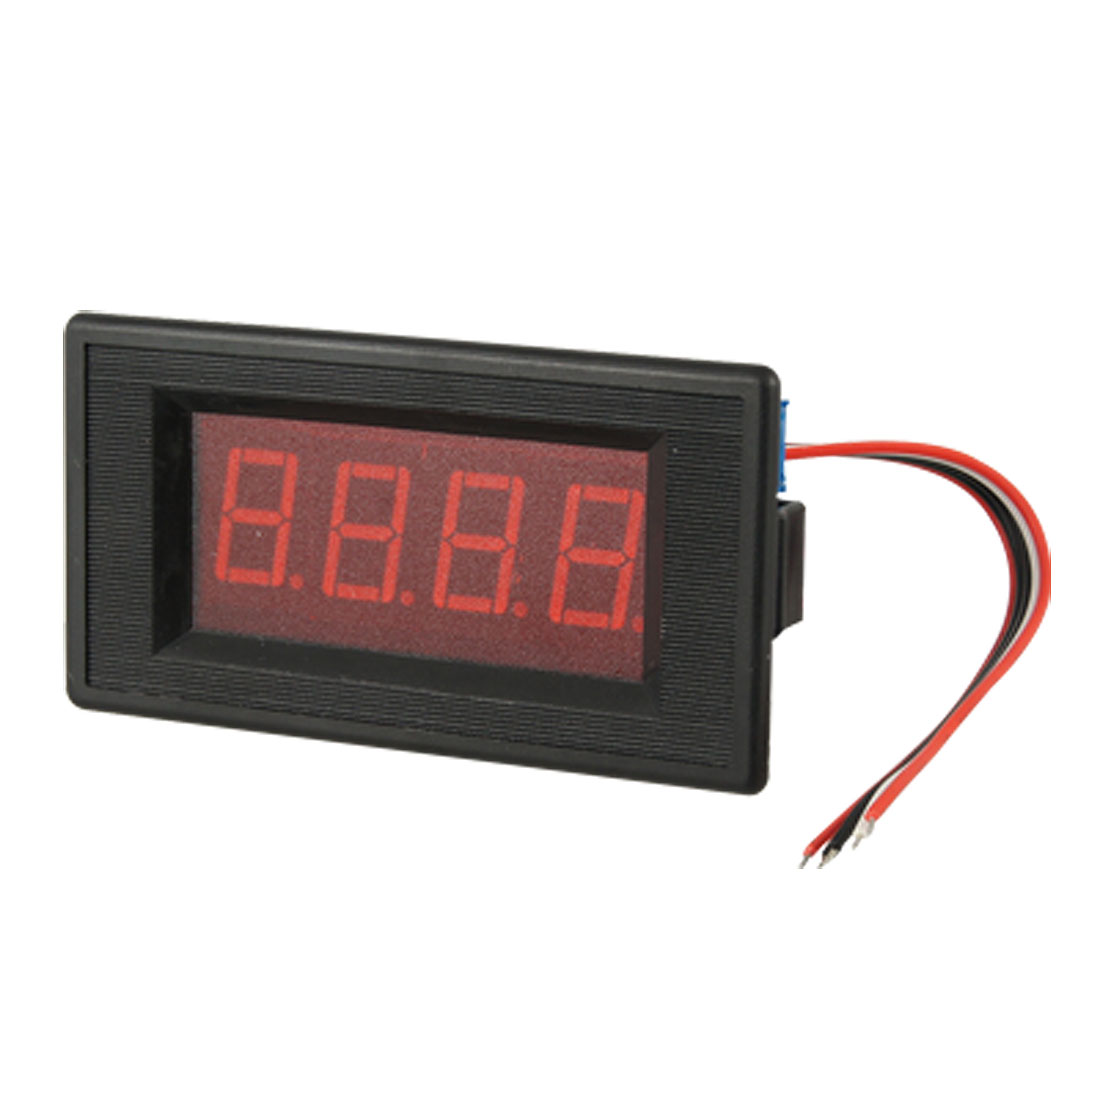 DC 200V 3 1/2 Digits Red LED Display Voltage Meter